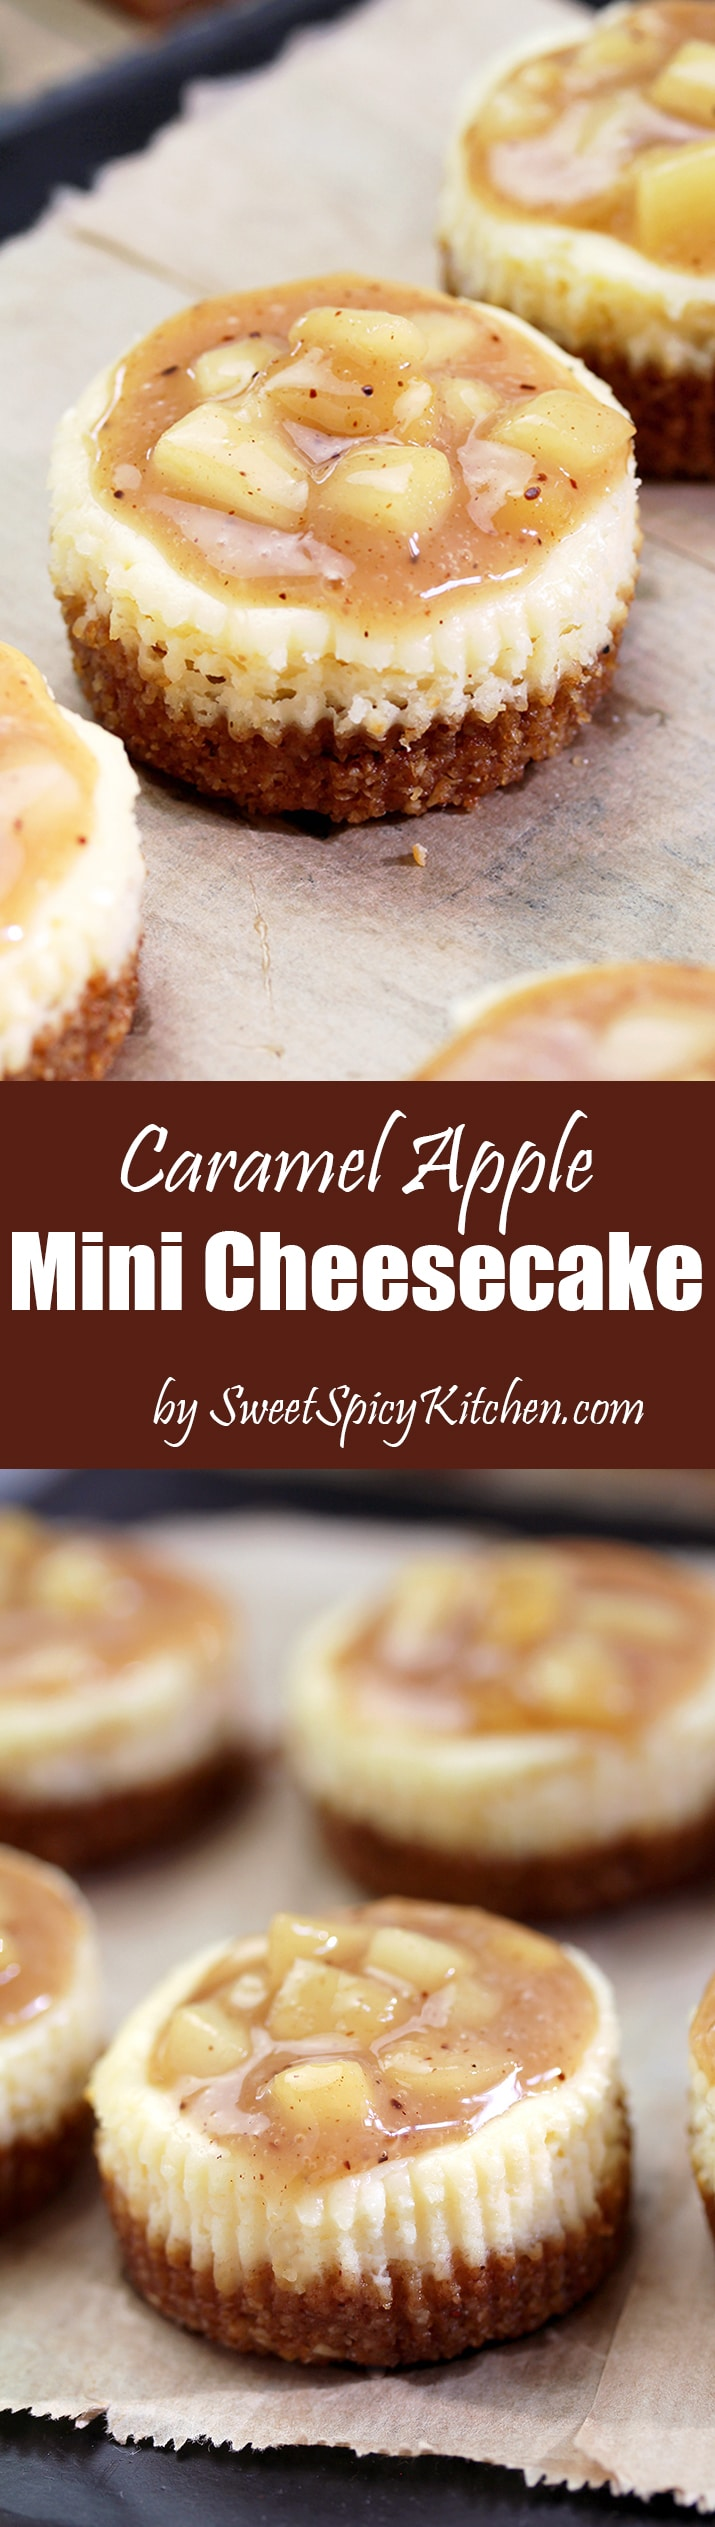 Caramel Apple Mini Cheesecake